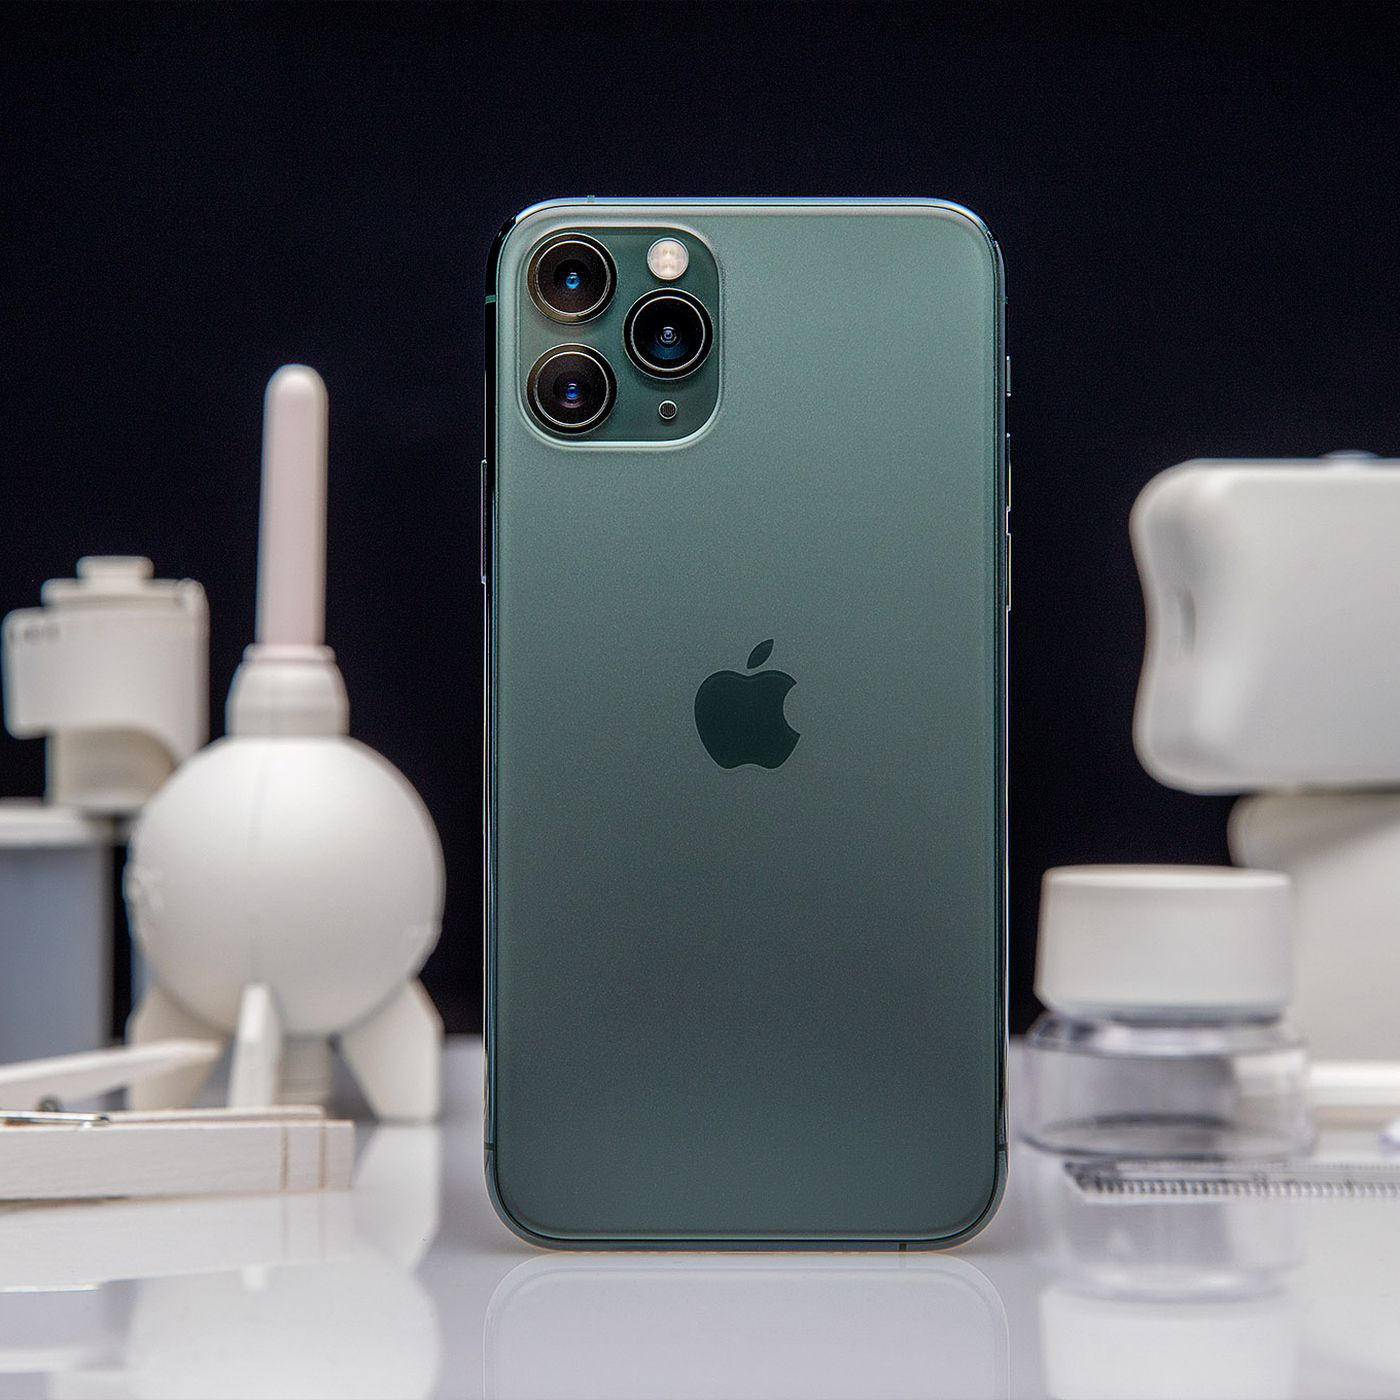 apple iphone 11 pro max review camera battery life screen midnight green price